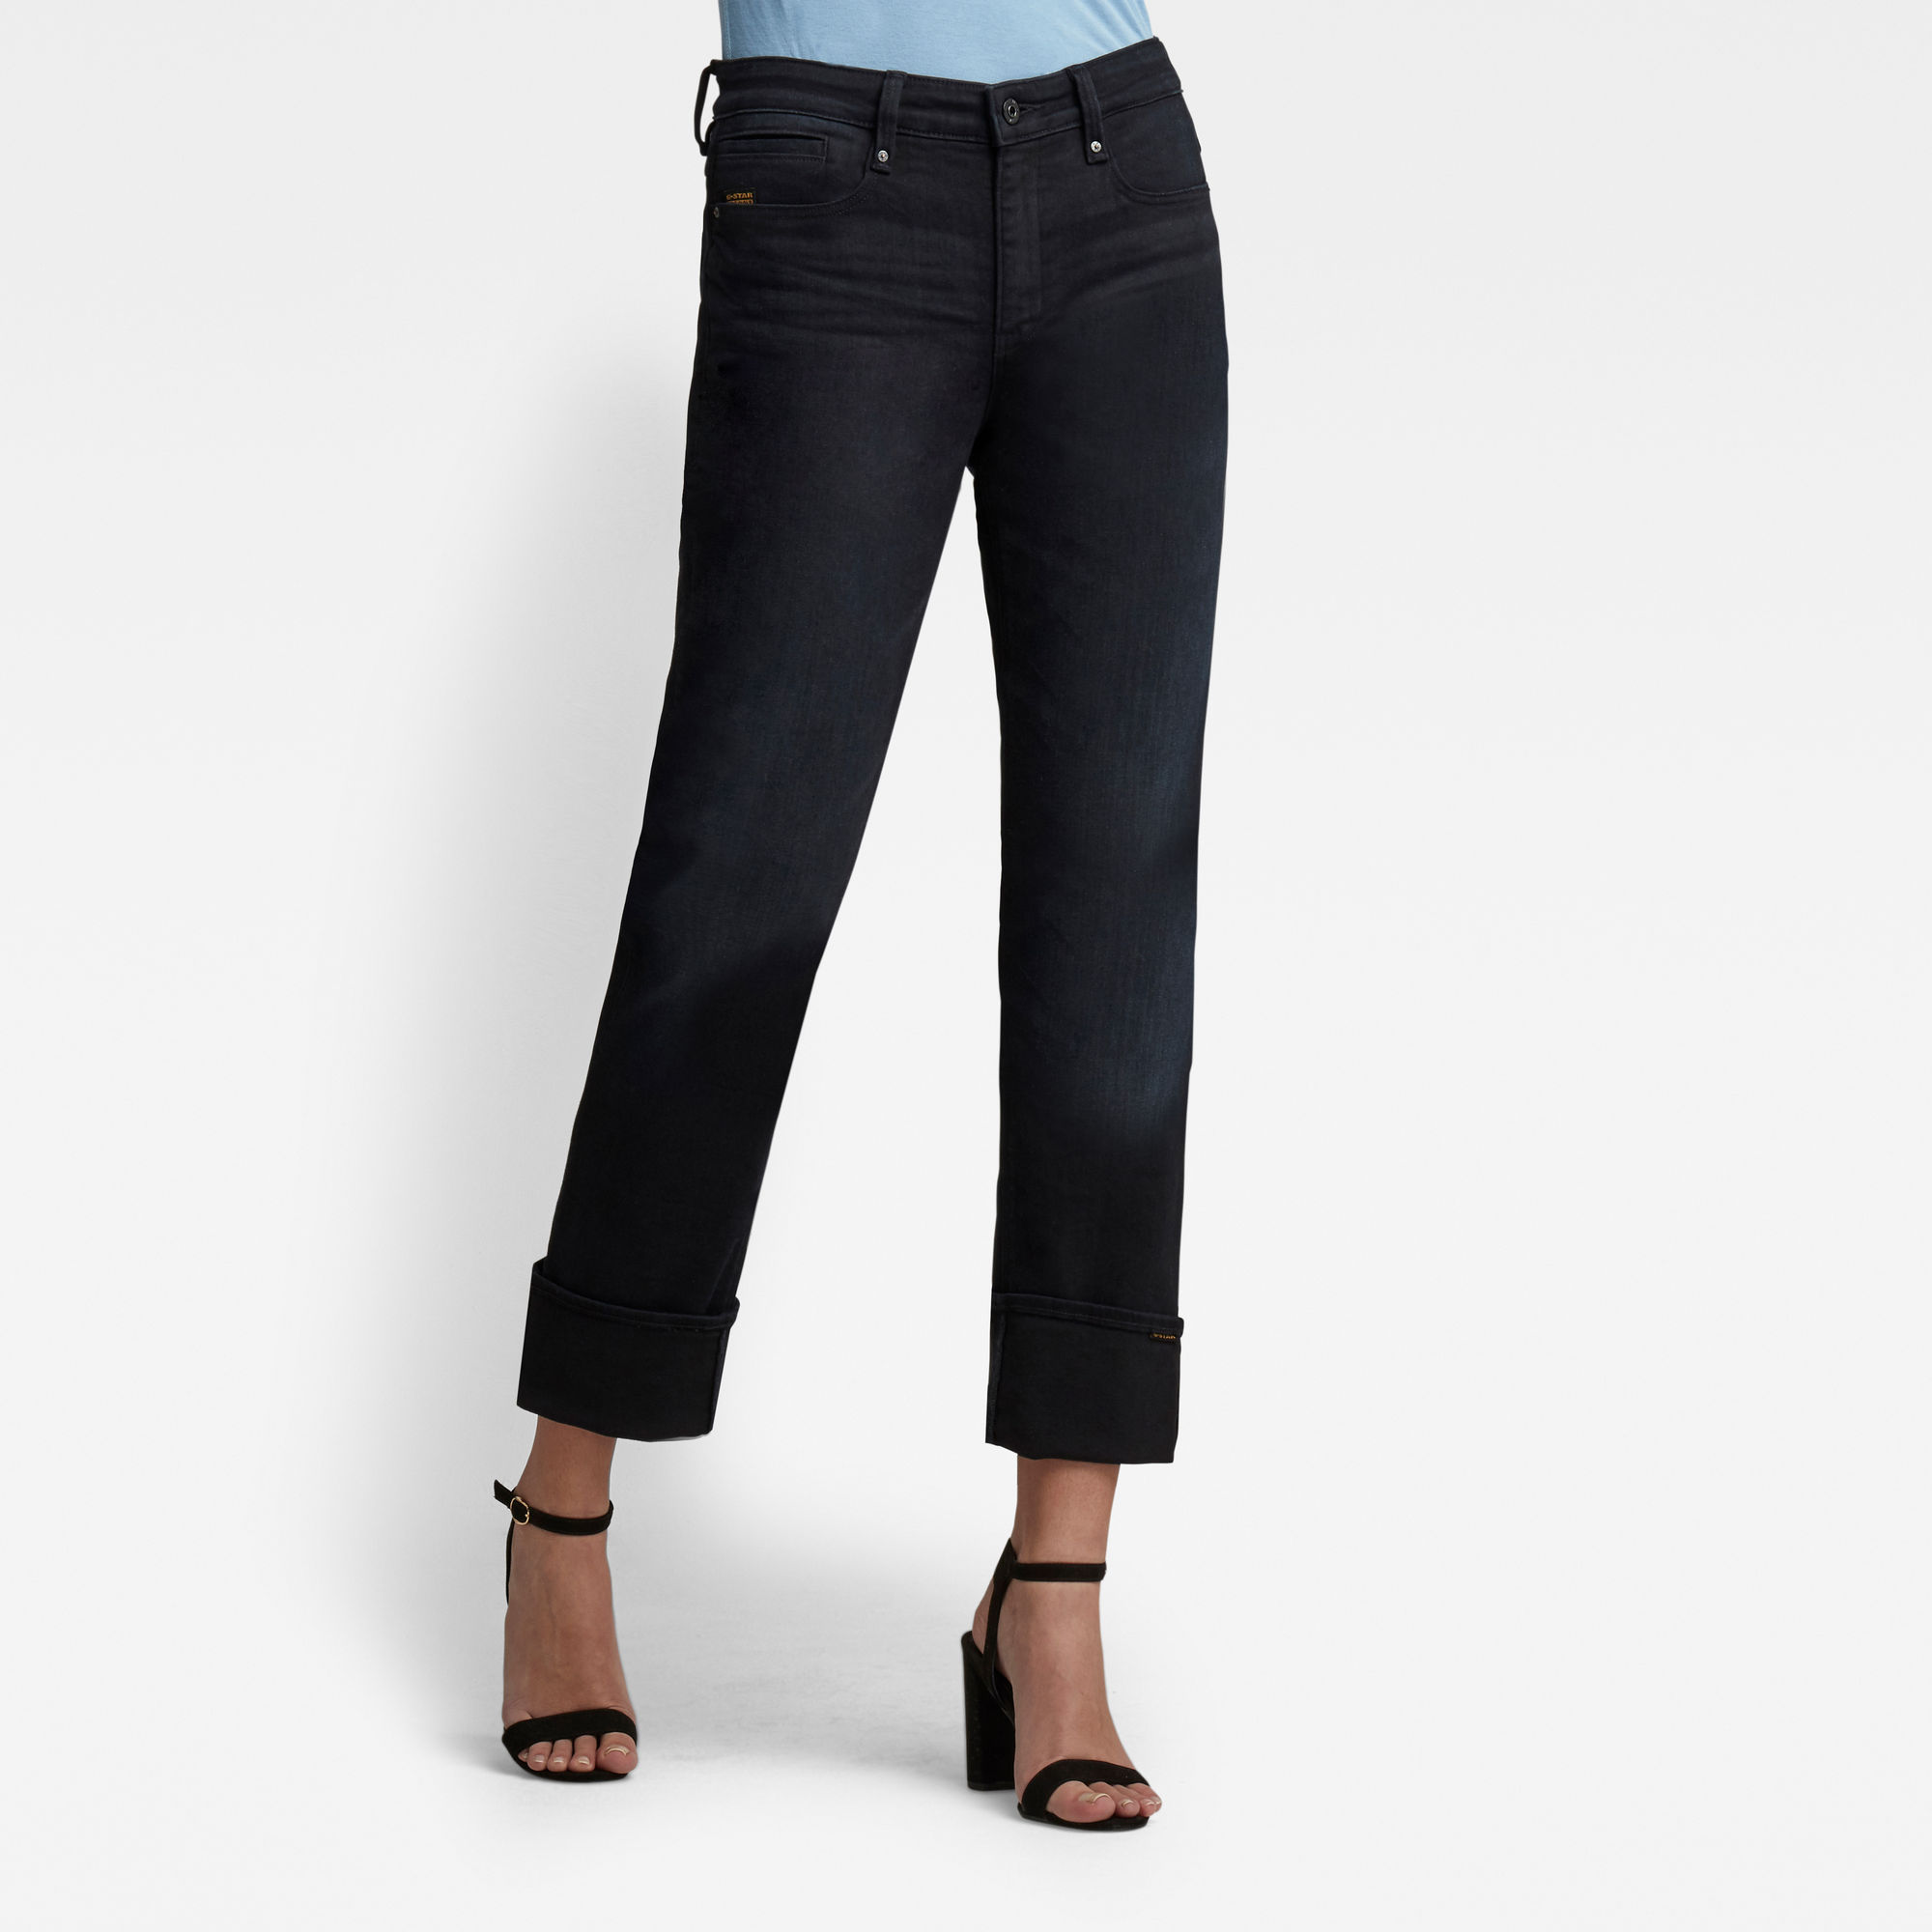 G-Star RAW Dames Noxer Straight Jeans Donkerblauw